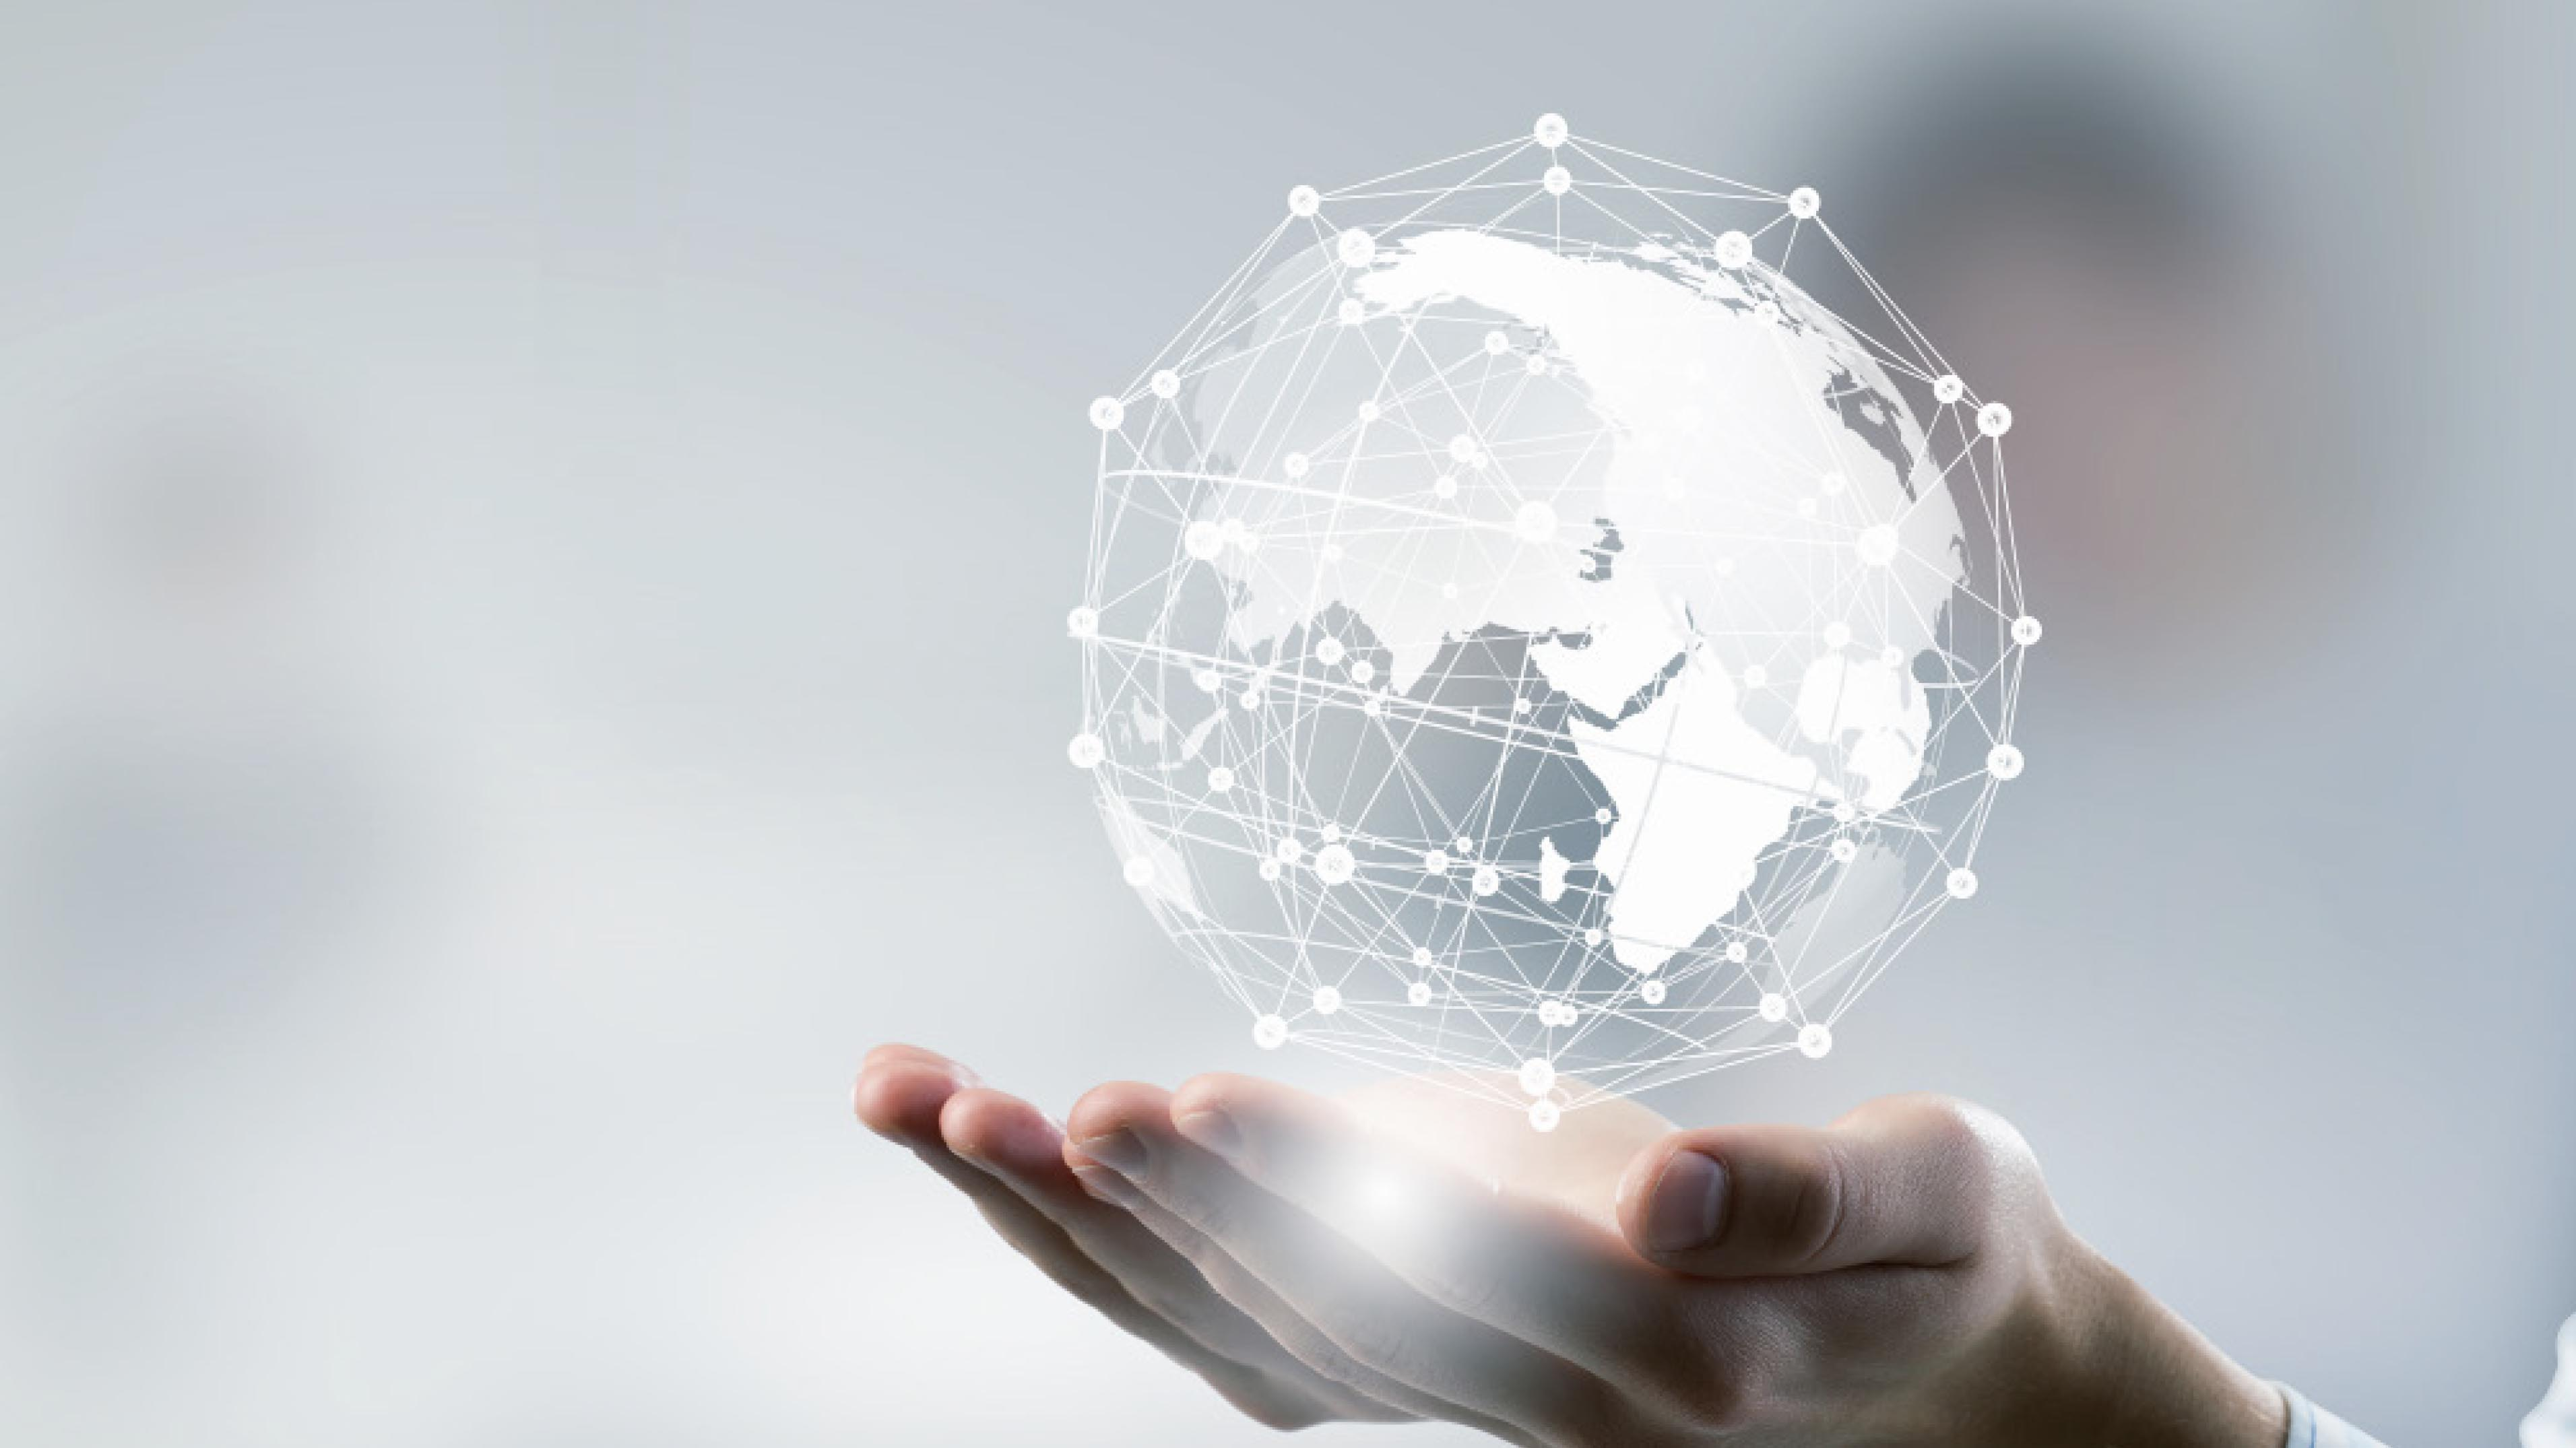 Hands Holding A Globe of Technology